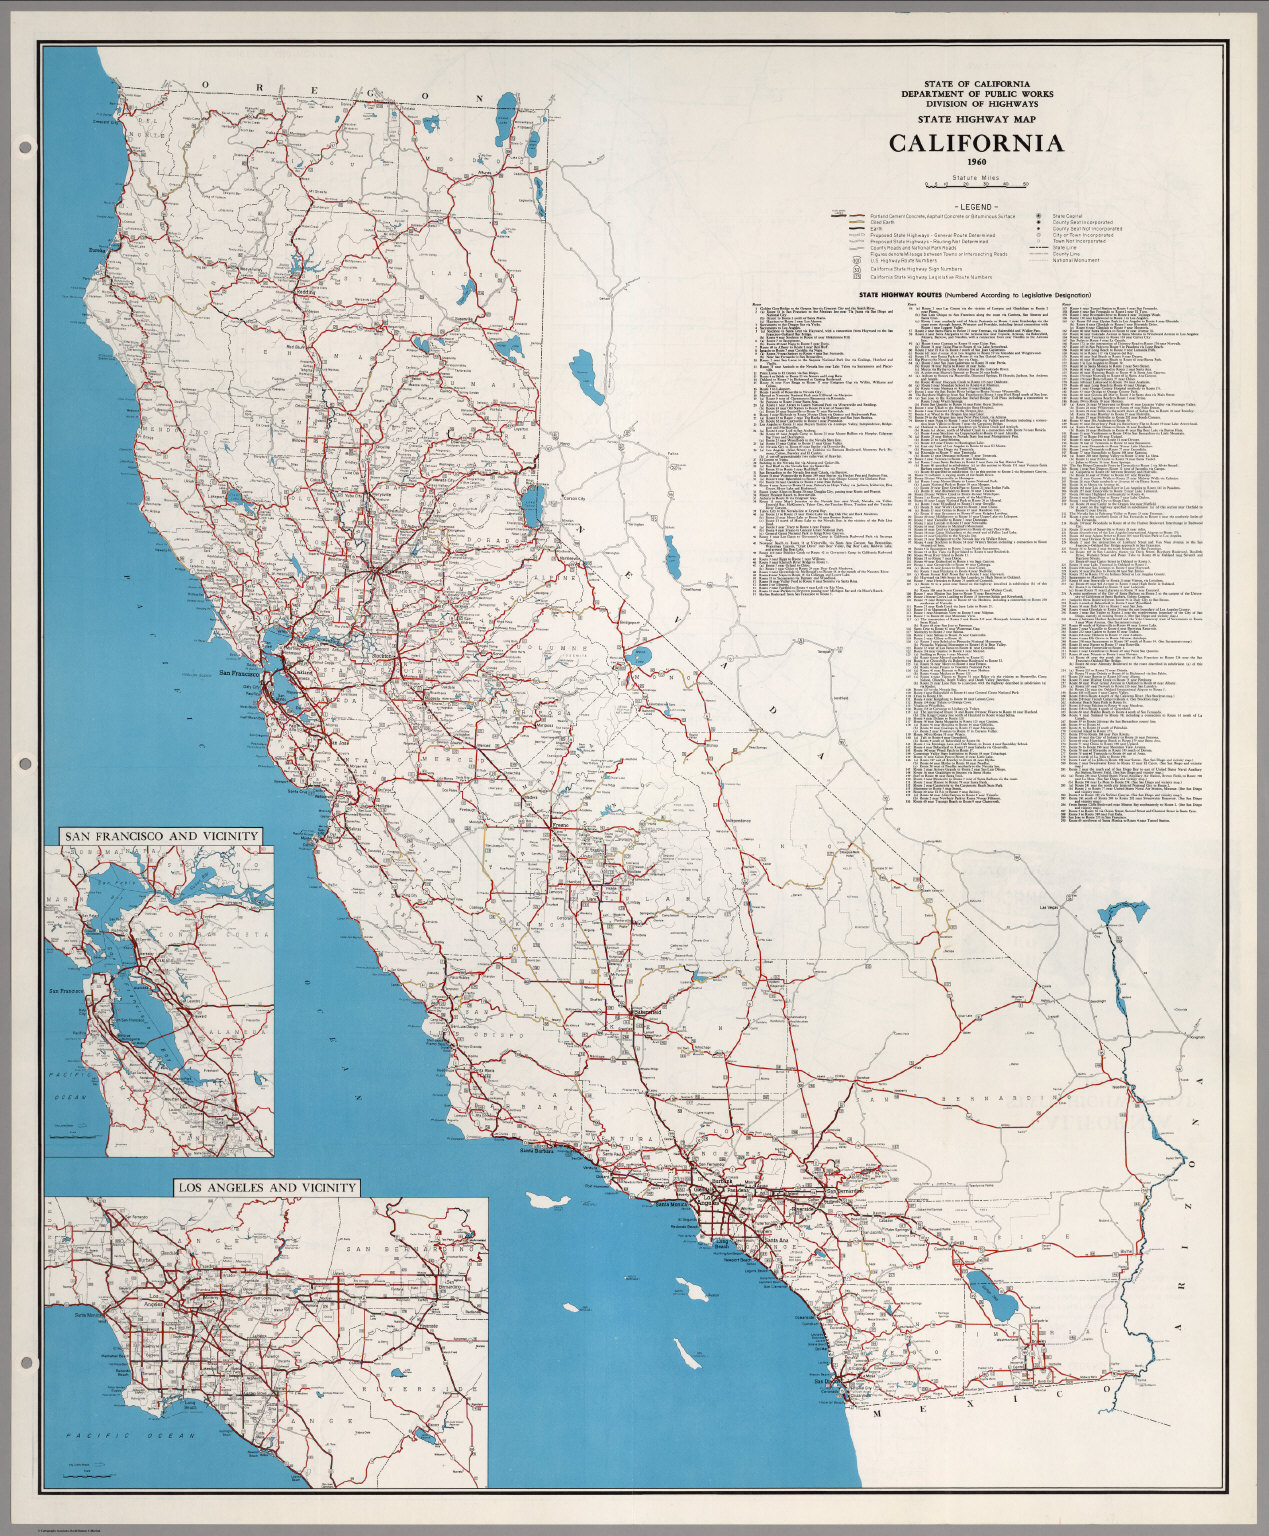 Maps With Road Map Of California Freeways And Highways - Klipy - Where Can I Buy A Map Of California